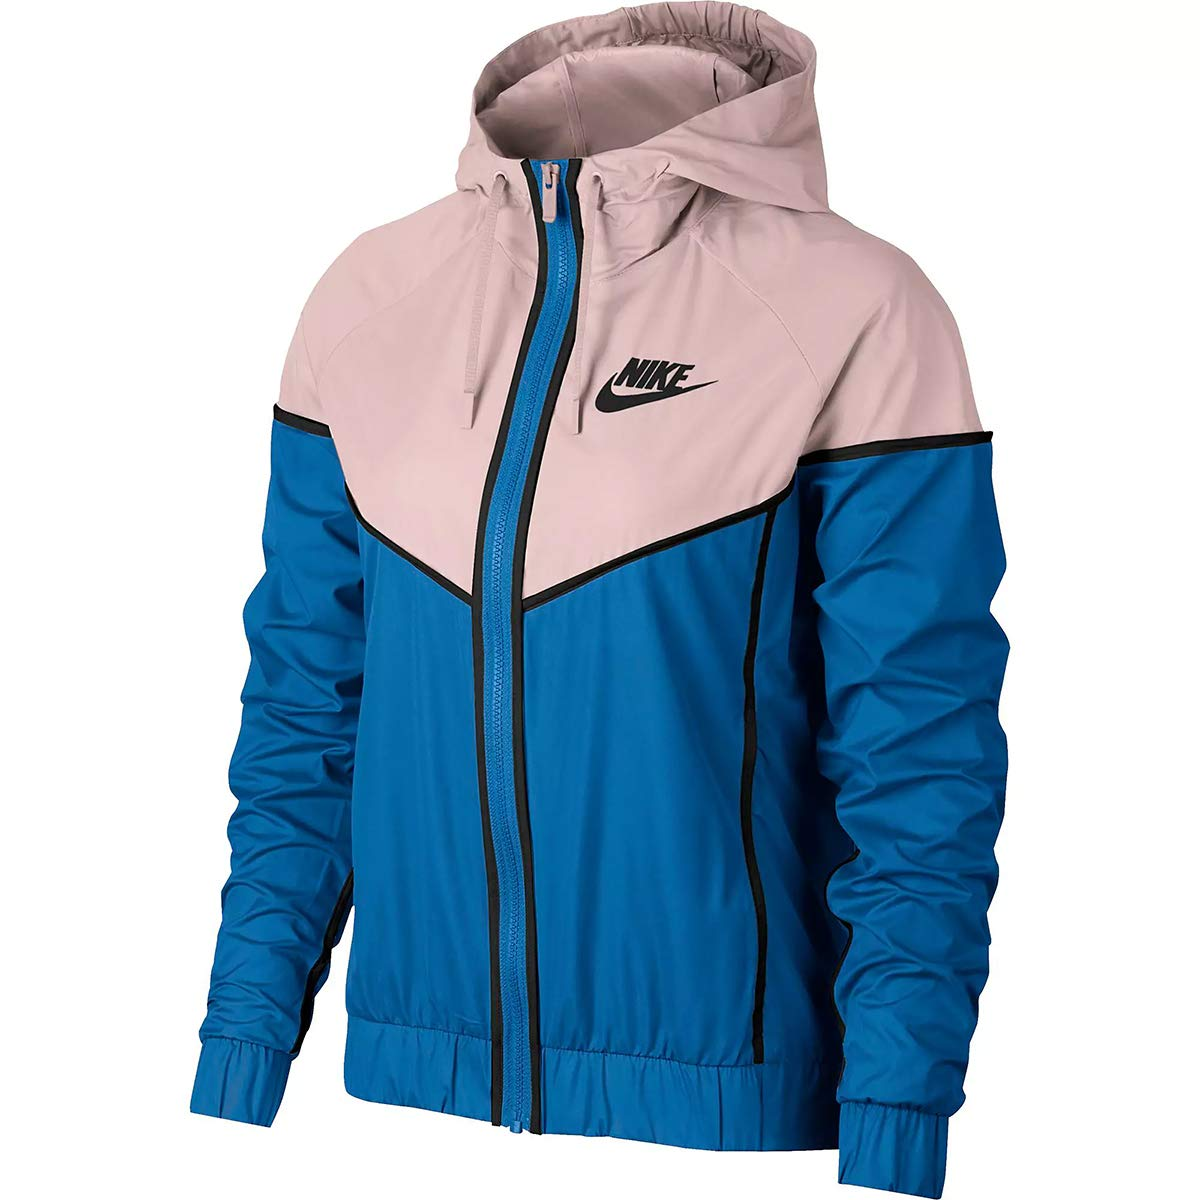 Nike Womens Windrunner Track Jacket Signal Blue/Crimson Tint/Black 883495-403 Size Small by Nike